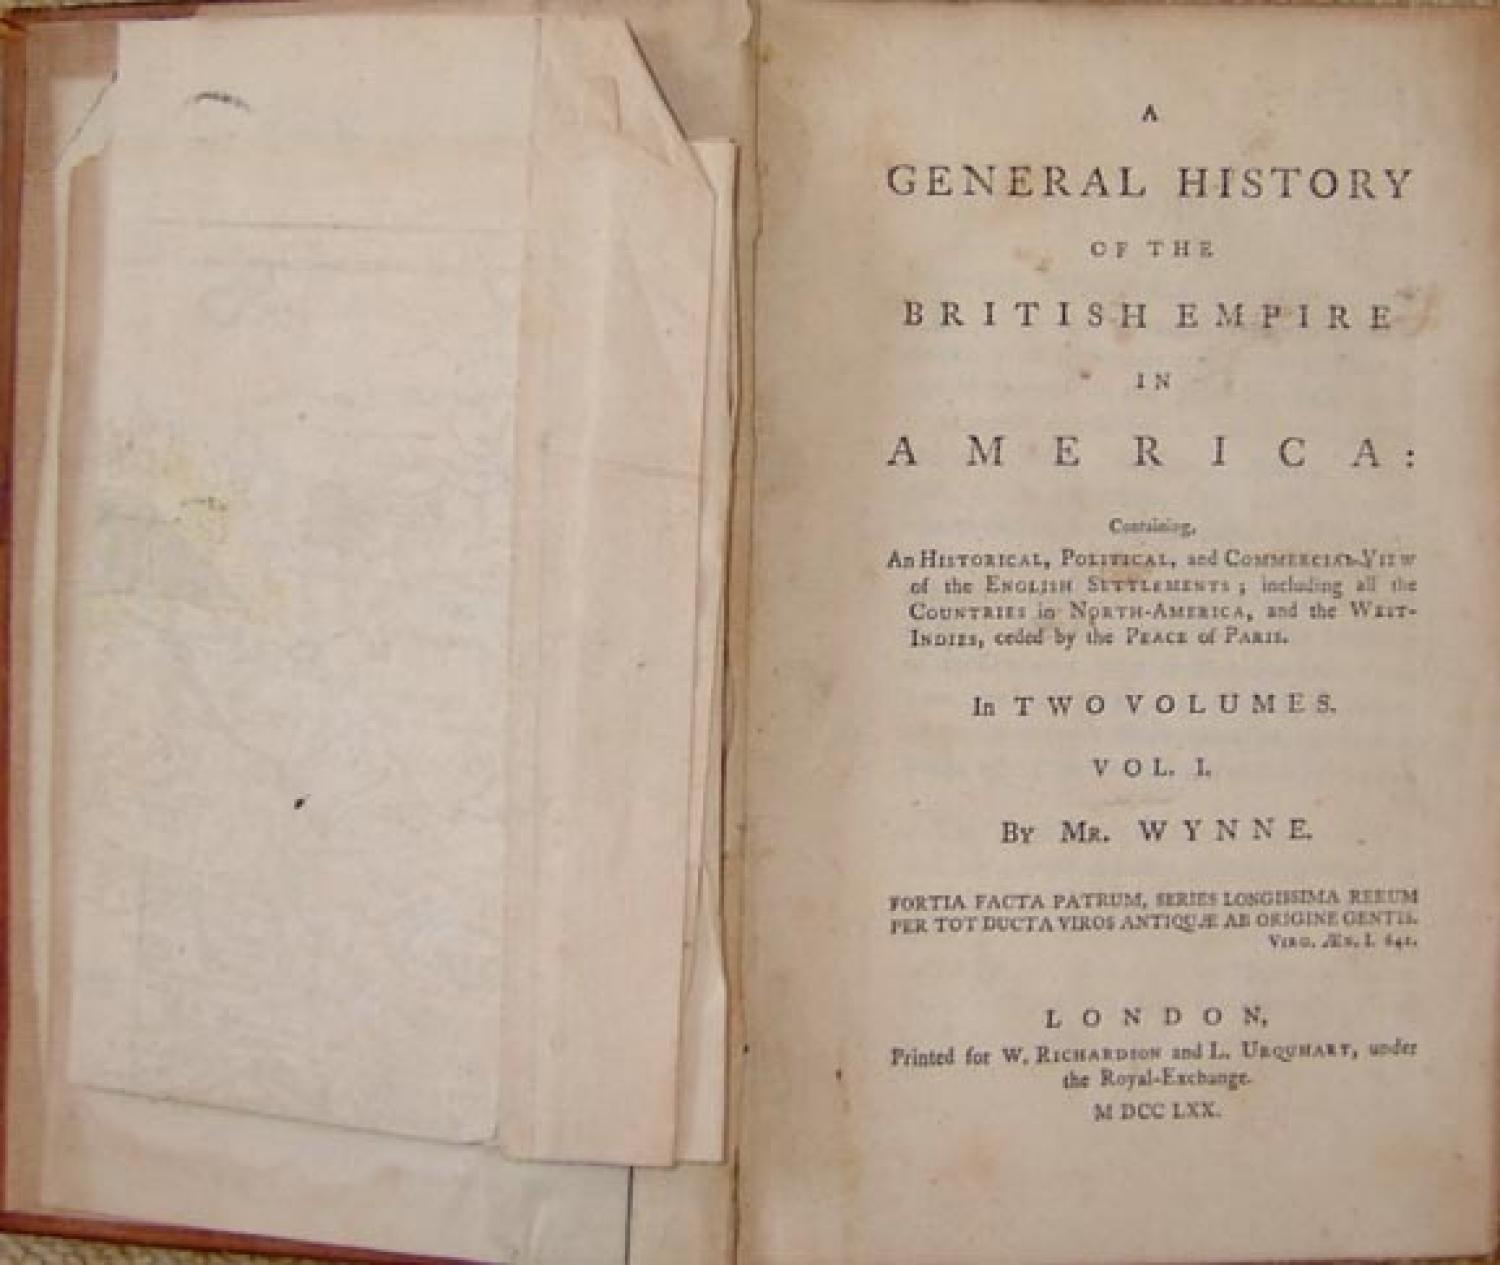 SOLD A General History of the British Empire in America